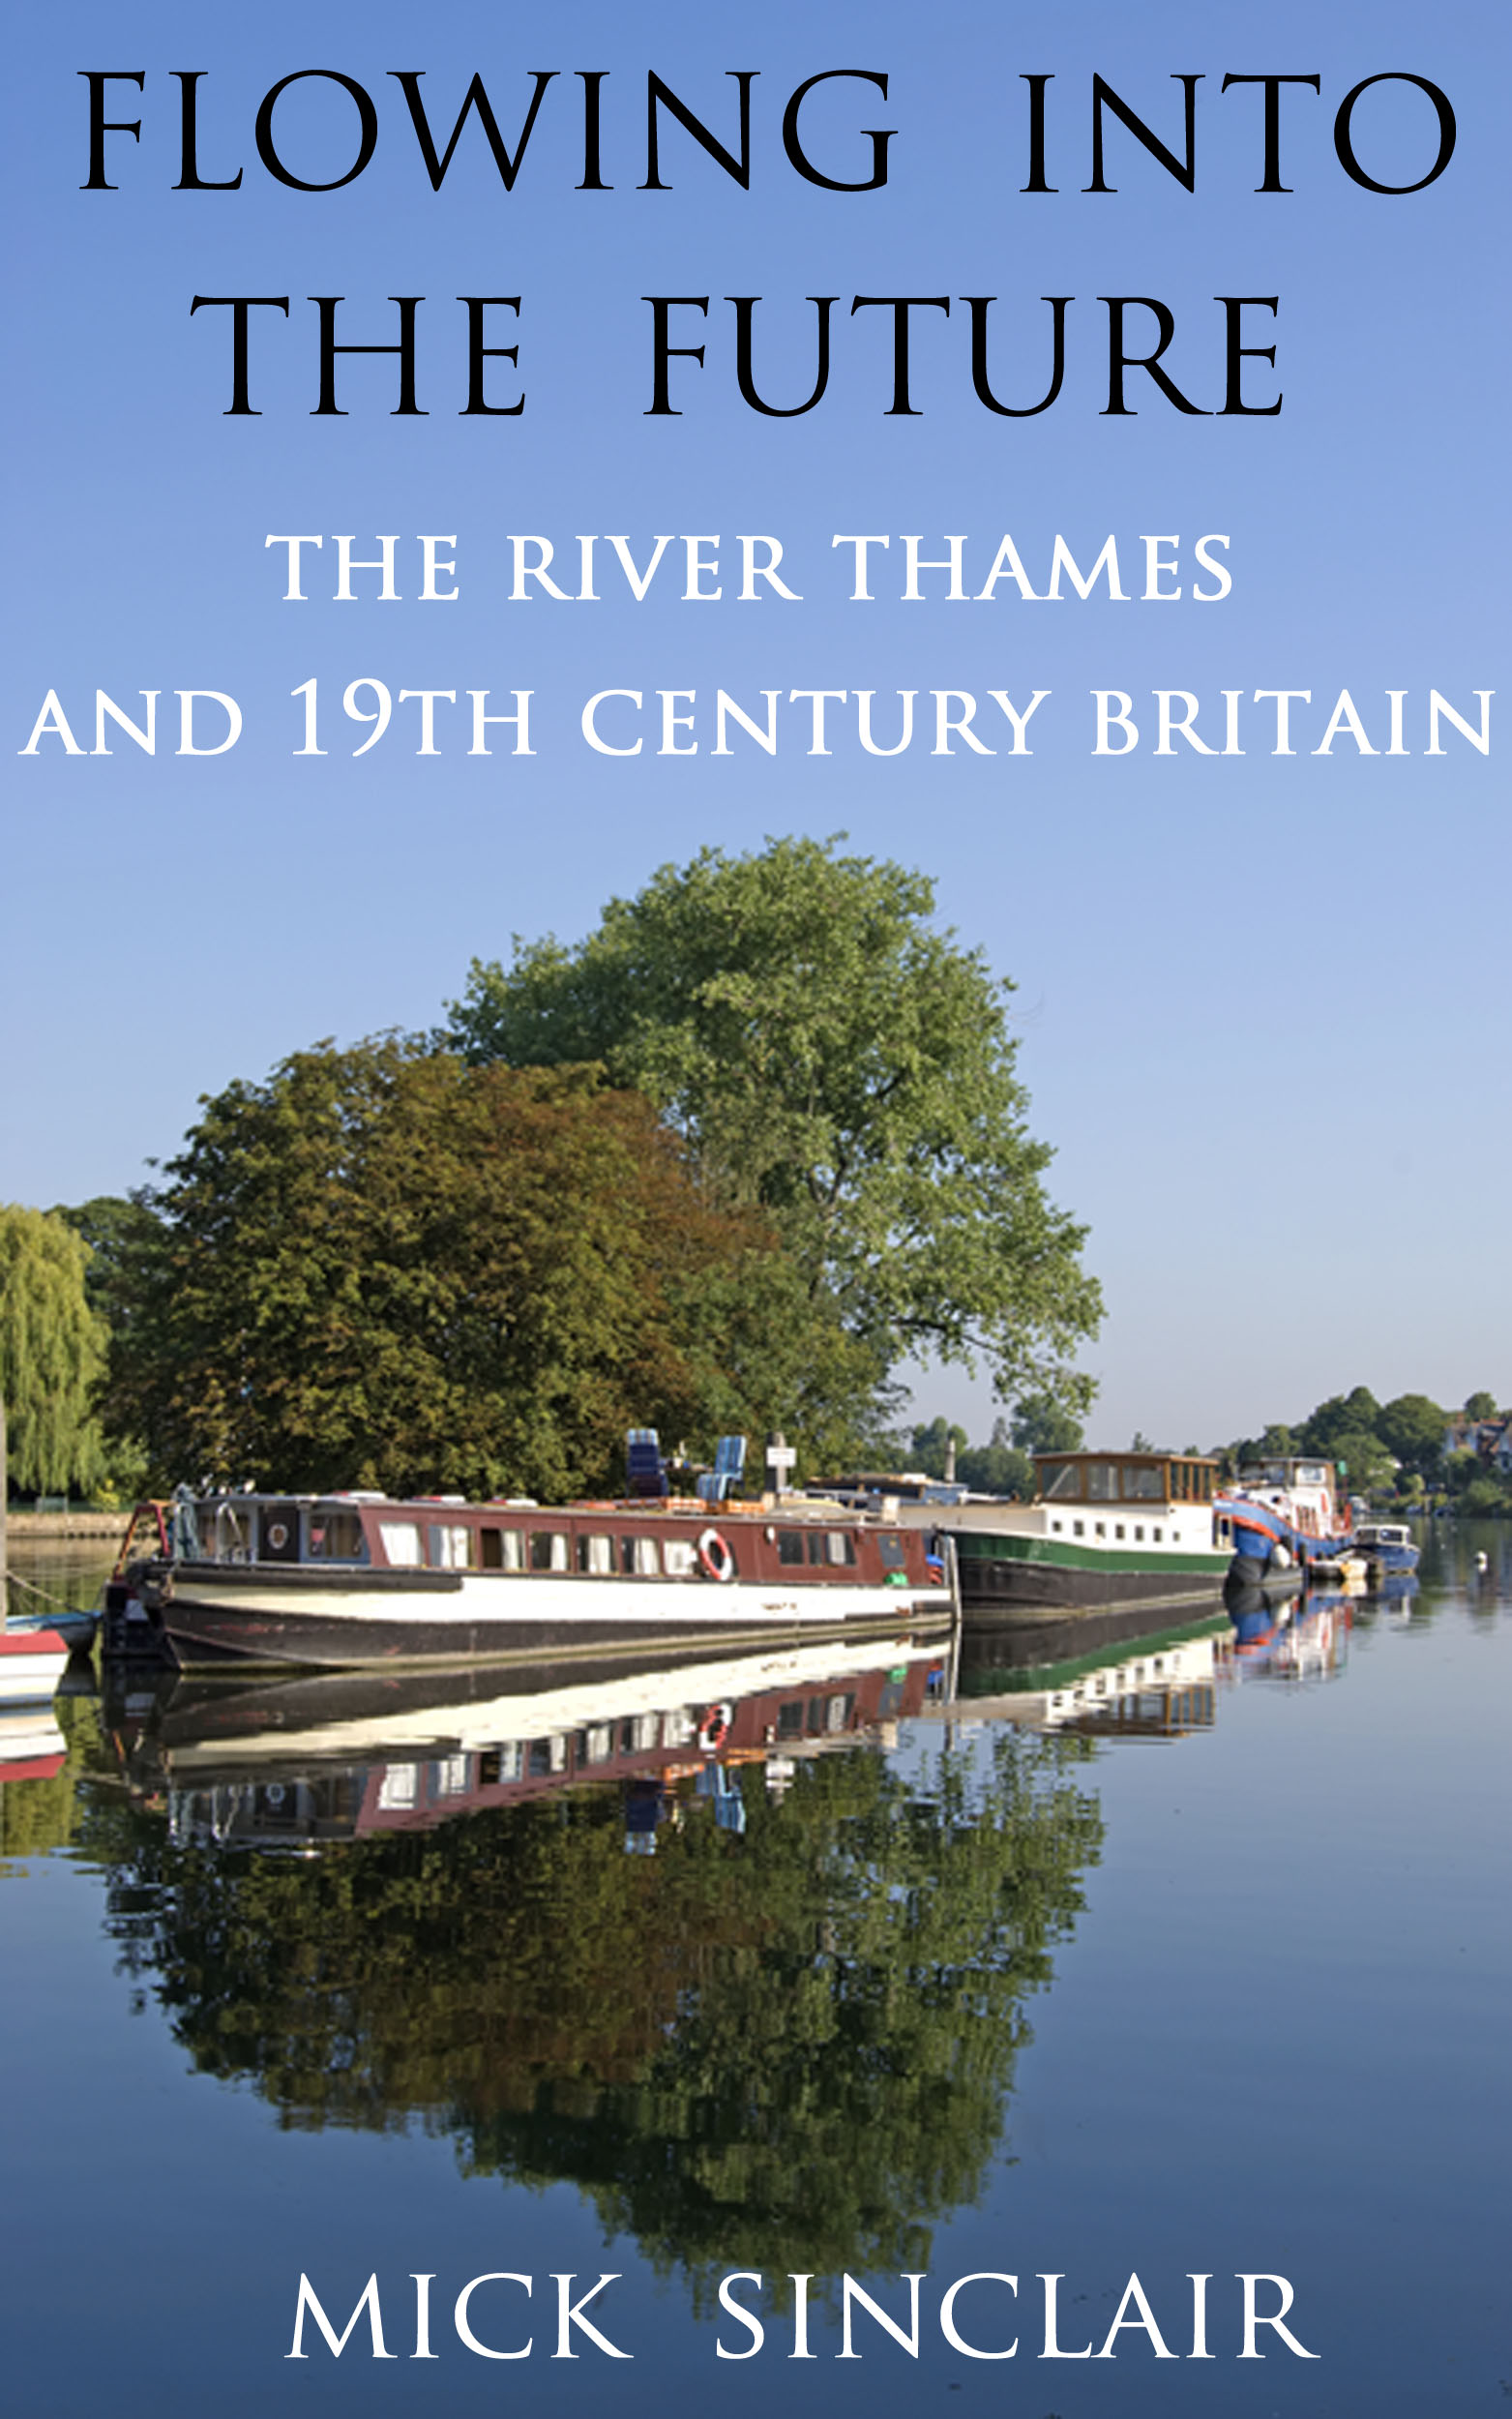 FLOWING INTO THE FUTURE: The River Thames and 19th Century Britain